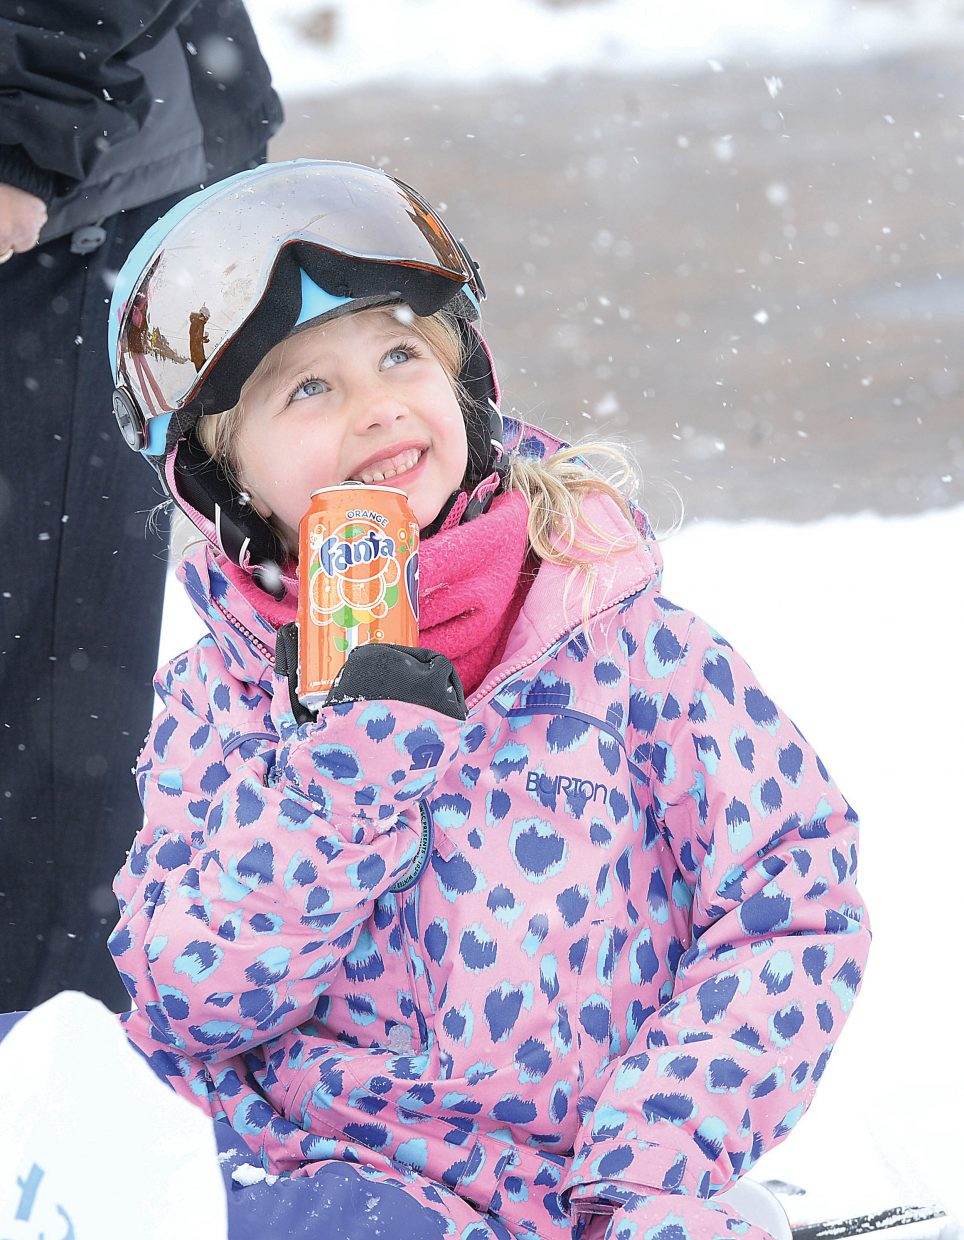 Six-year-old Rockelle Worley enjoys a soda pop at the base of the Steamboat Ski Area during the annual Soda Pop Slalom race Friday morning. The event is a part of the annual Steamboat Springs Winter Carnival celebration.